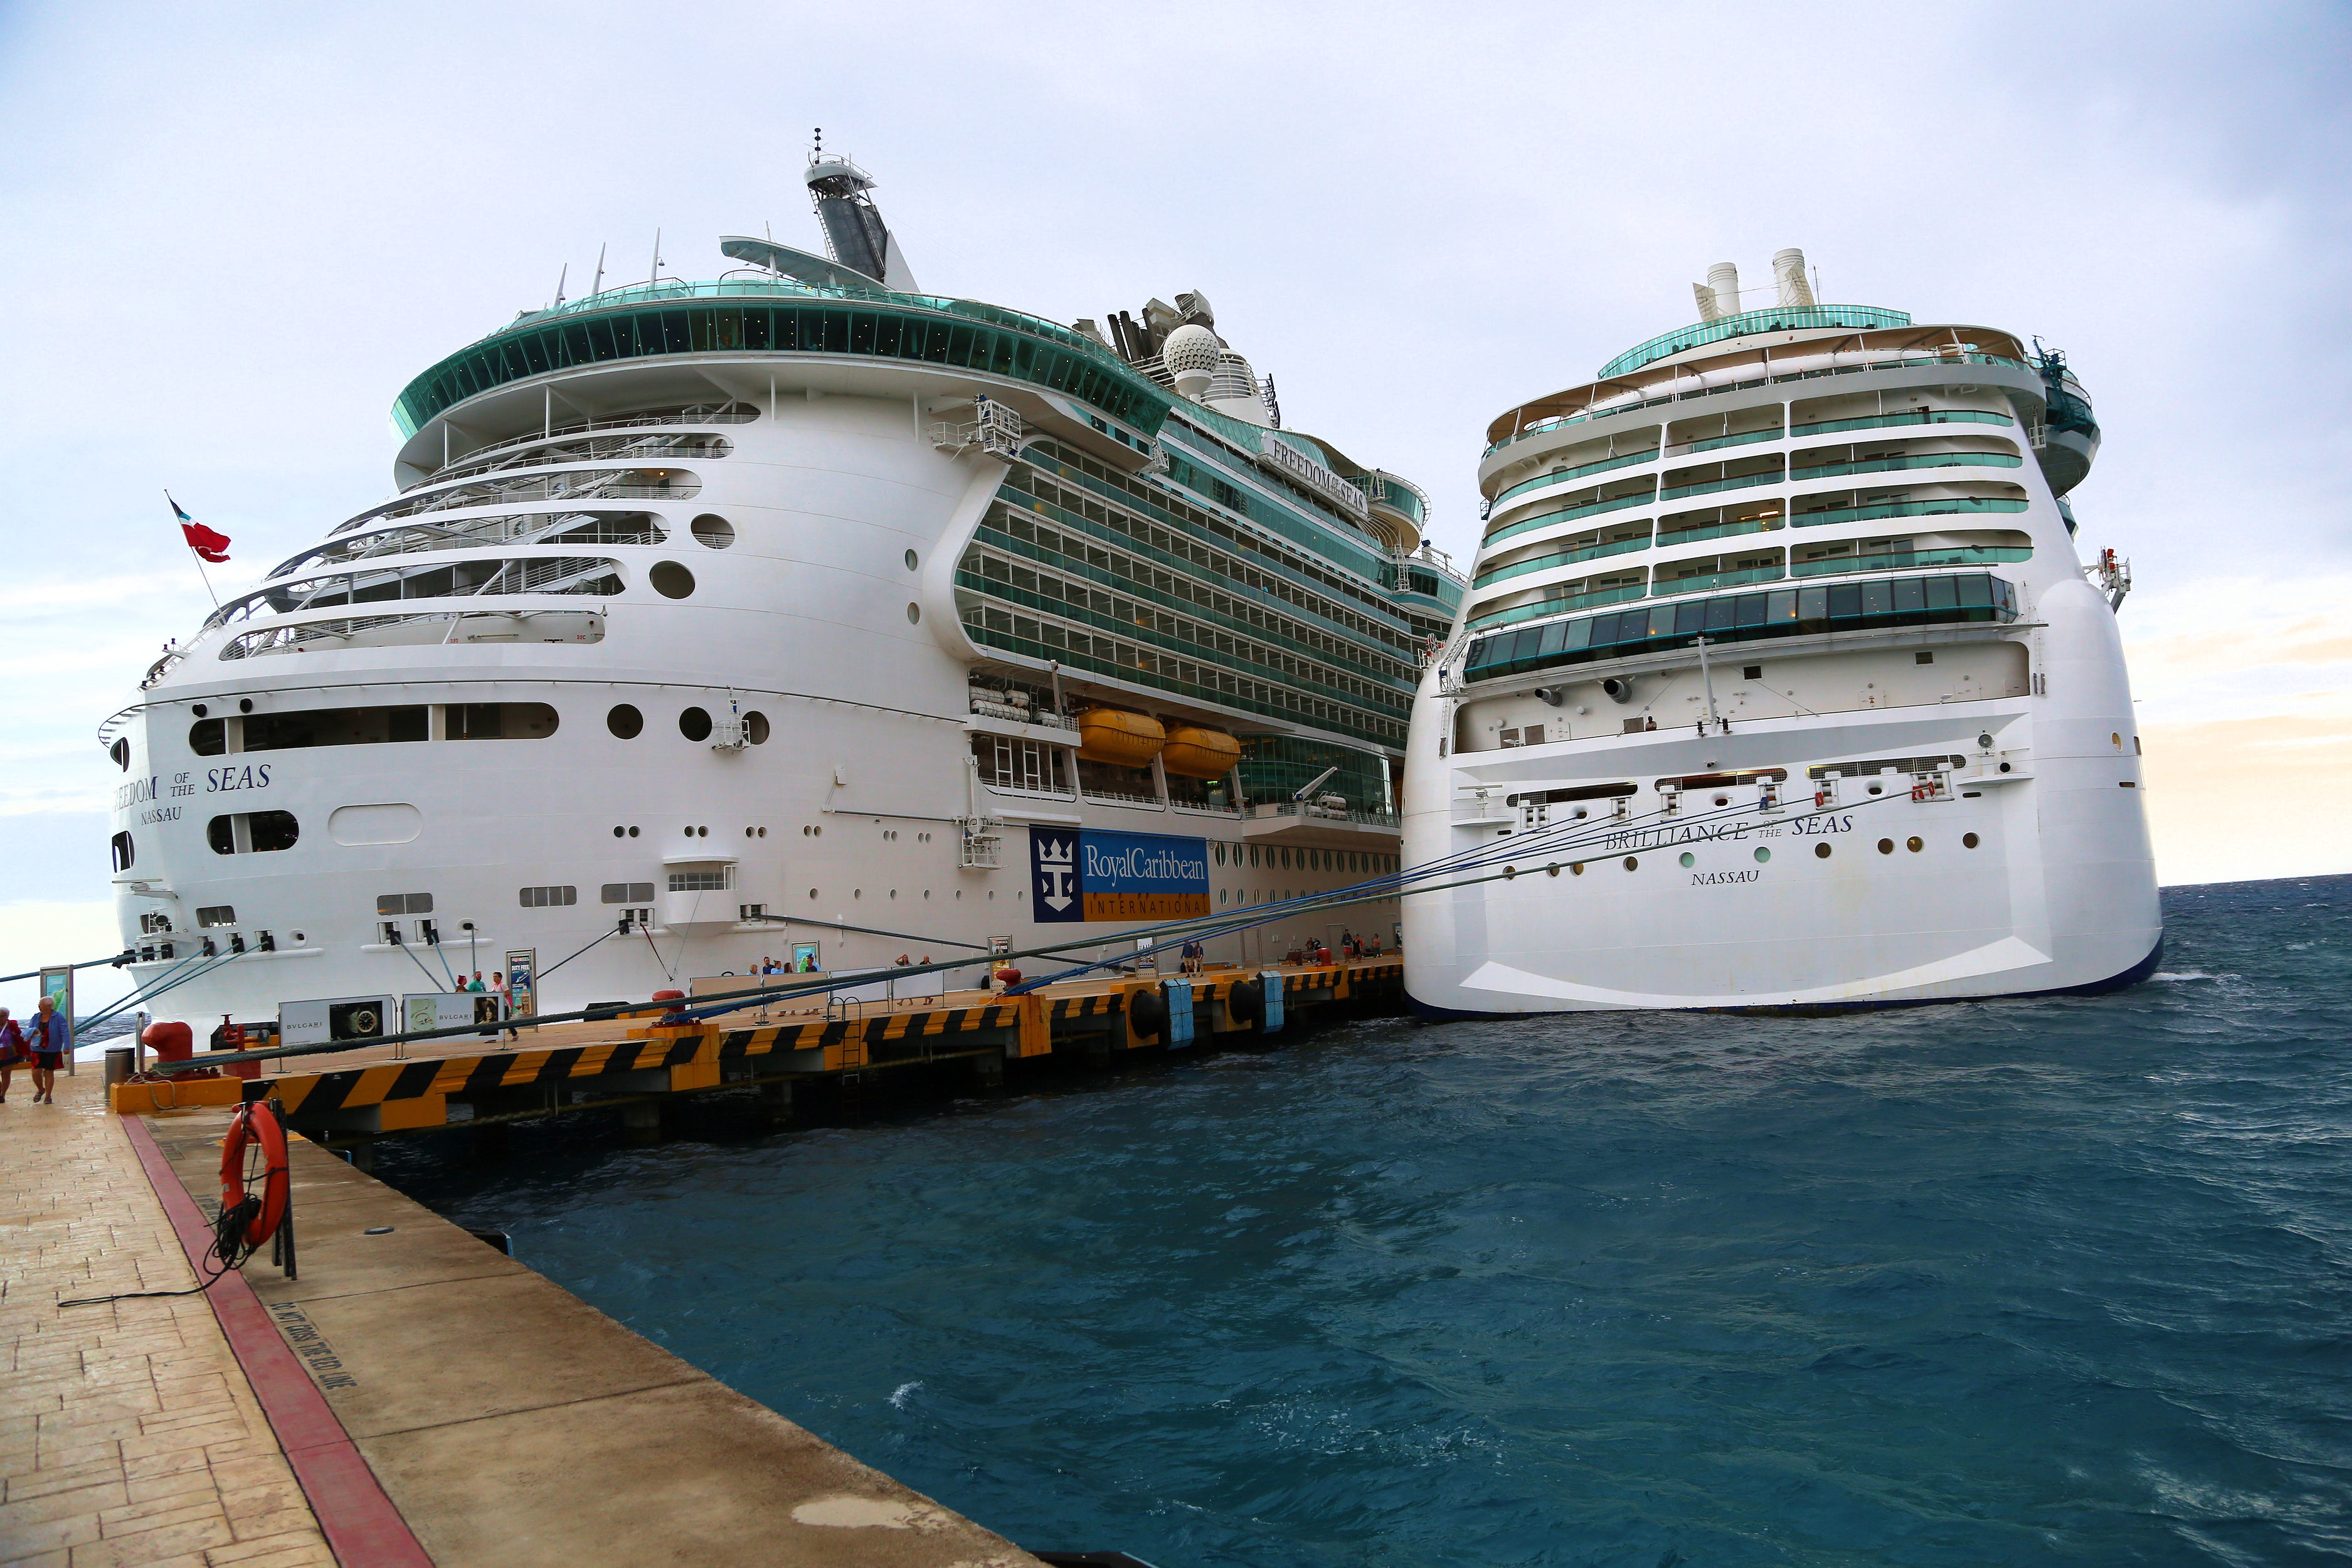 Enchantment and Brilliance of the Seas